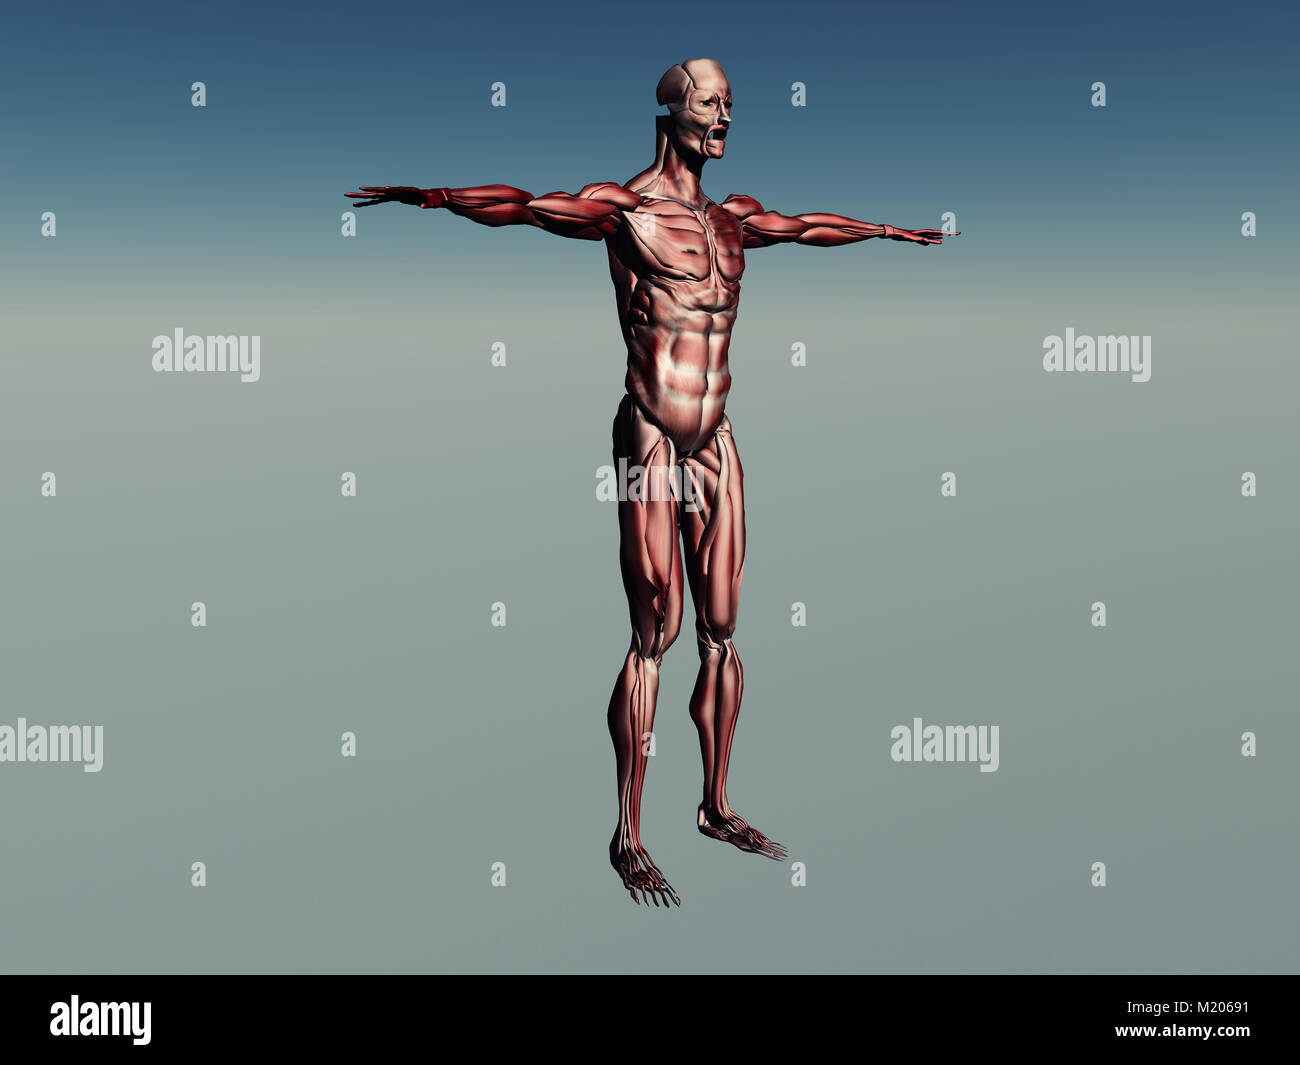 Muscle Hypertrophy Stock Photos & Muscle Hypertrophy Stock